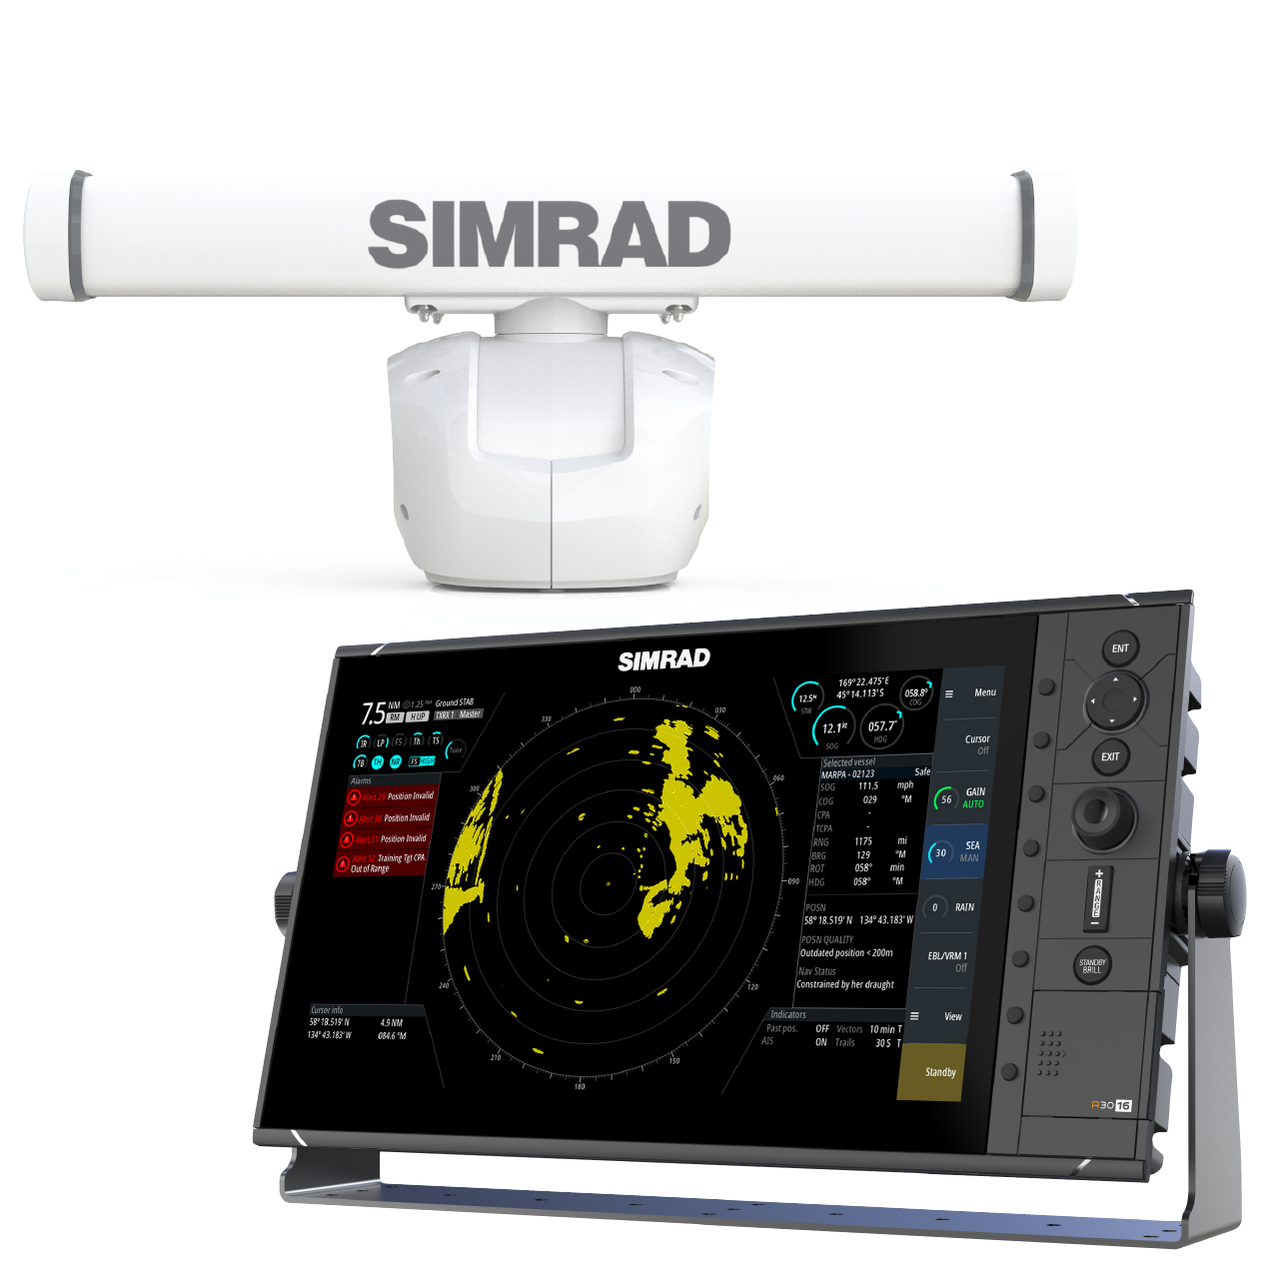 Simrad R3016 Radar Control Unit with HALO 3